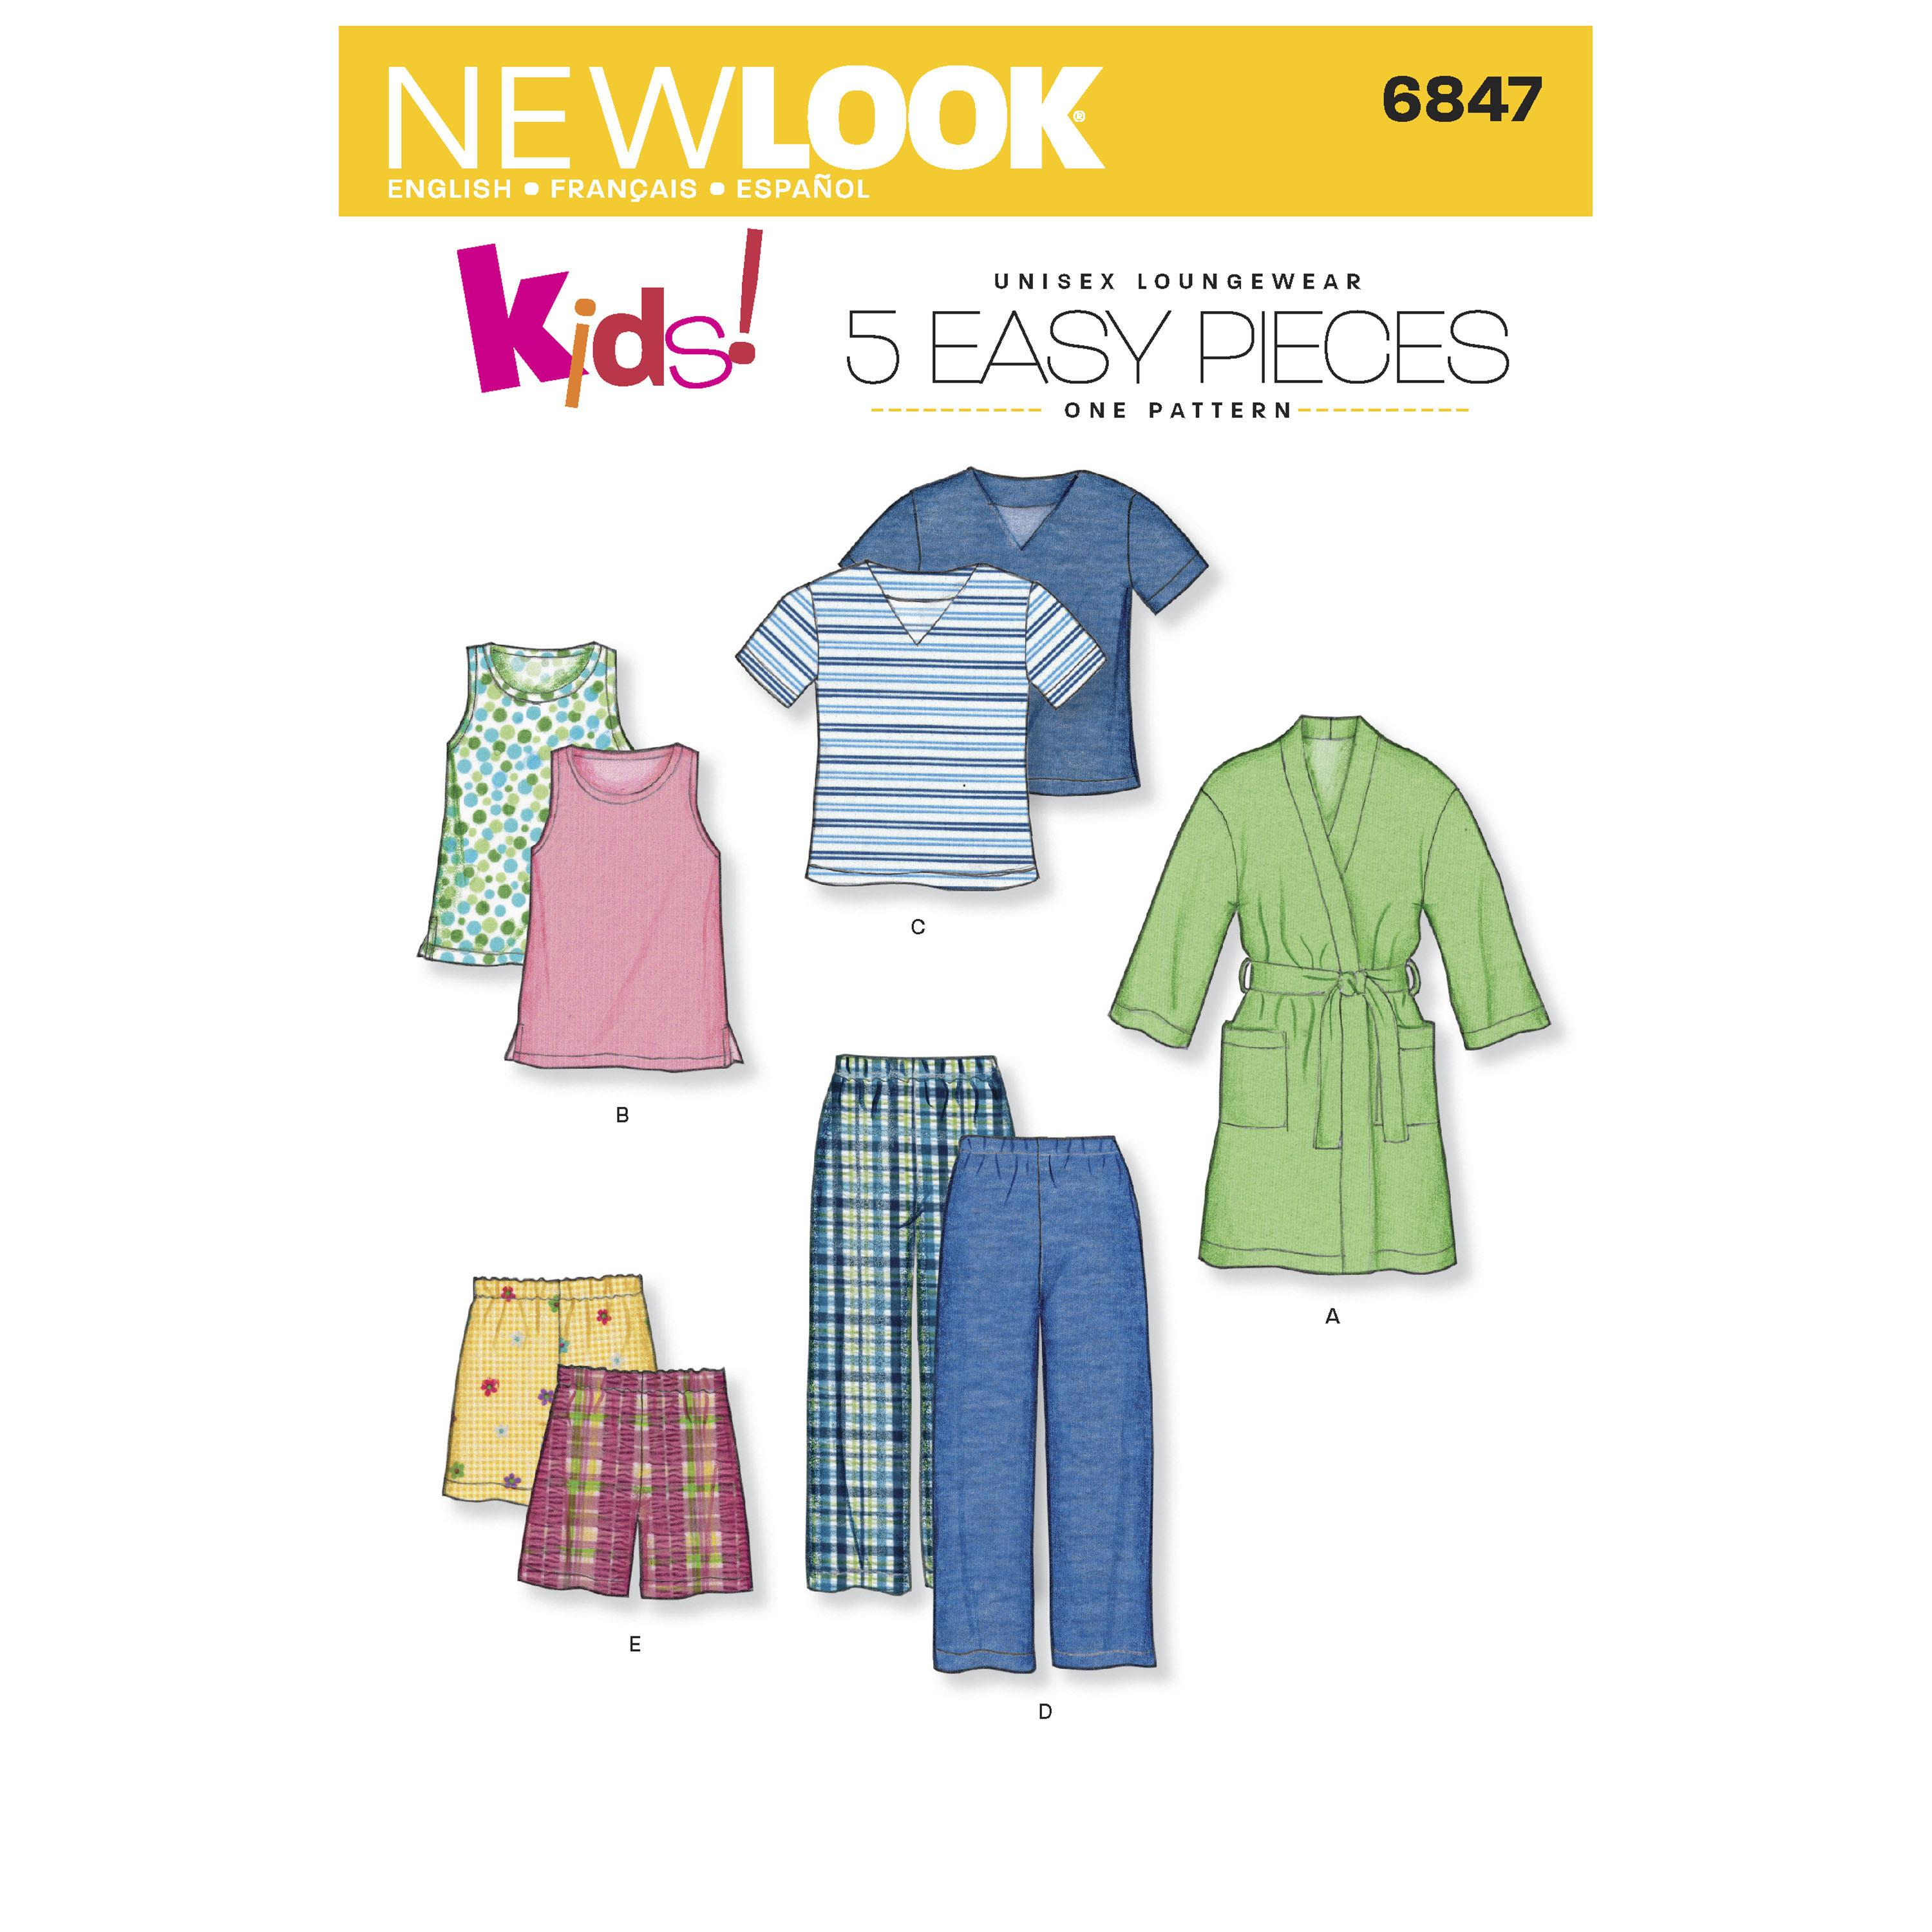 NewLook N6847 Child Sleepwear